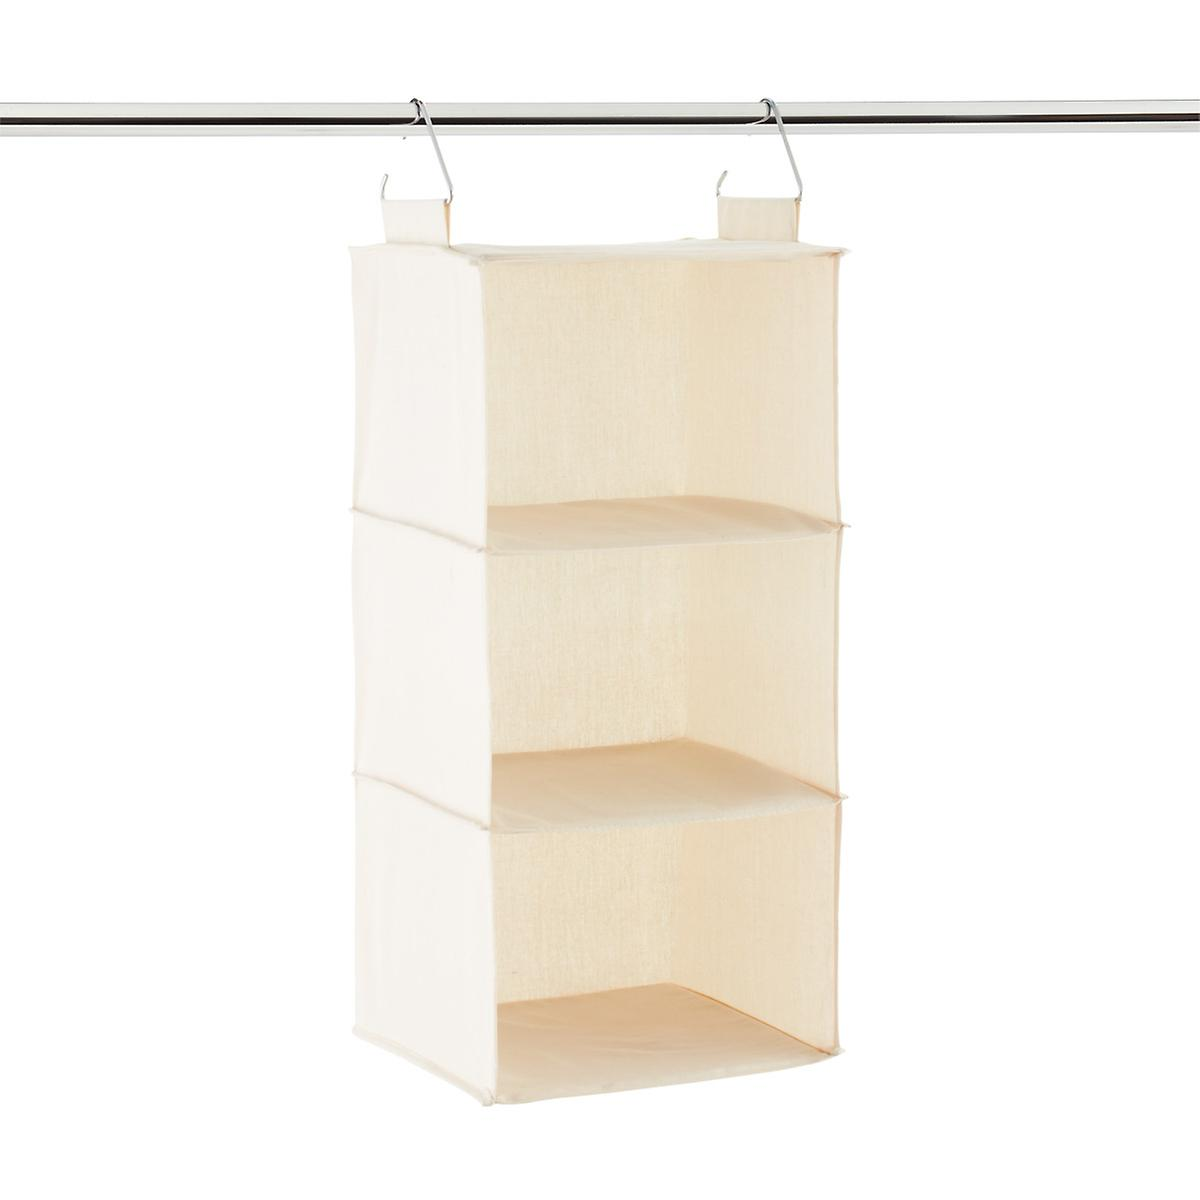 3 Compartment Natural Canvas Hanging Sweater Organizer The